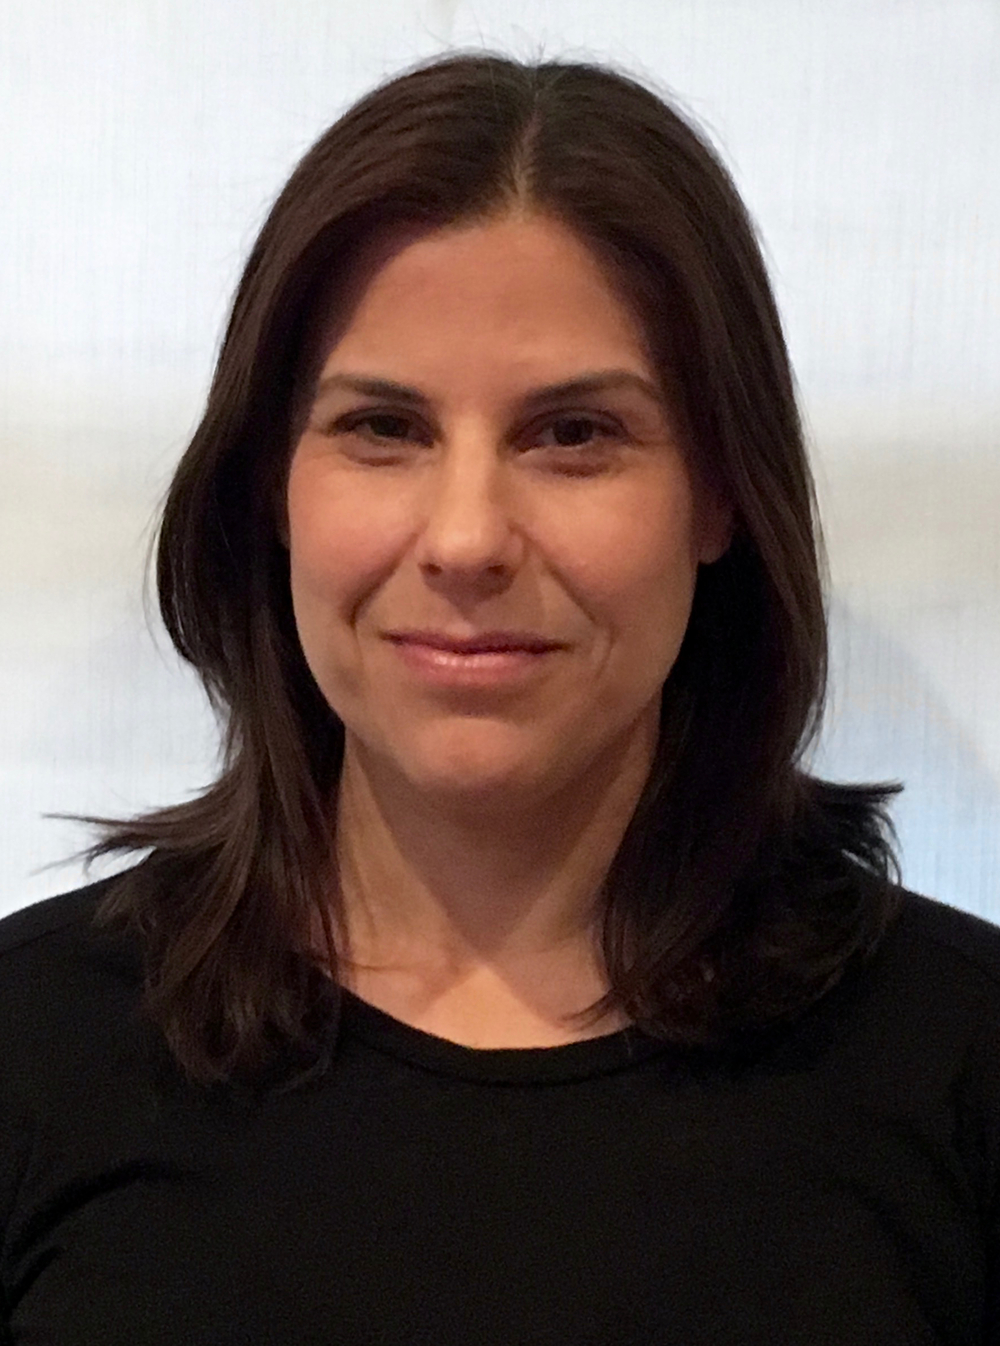 Dr. Lauren Rotko Lauren recently earned her PHD in social work from NYU with a focus on the stressors found in low-income communities. Her specialty is curriculum design and editing.